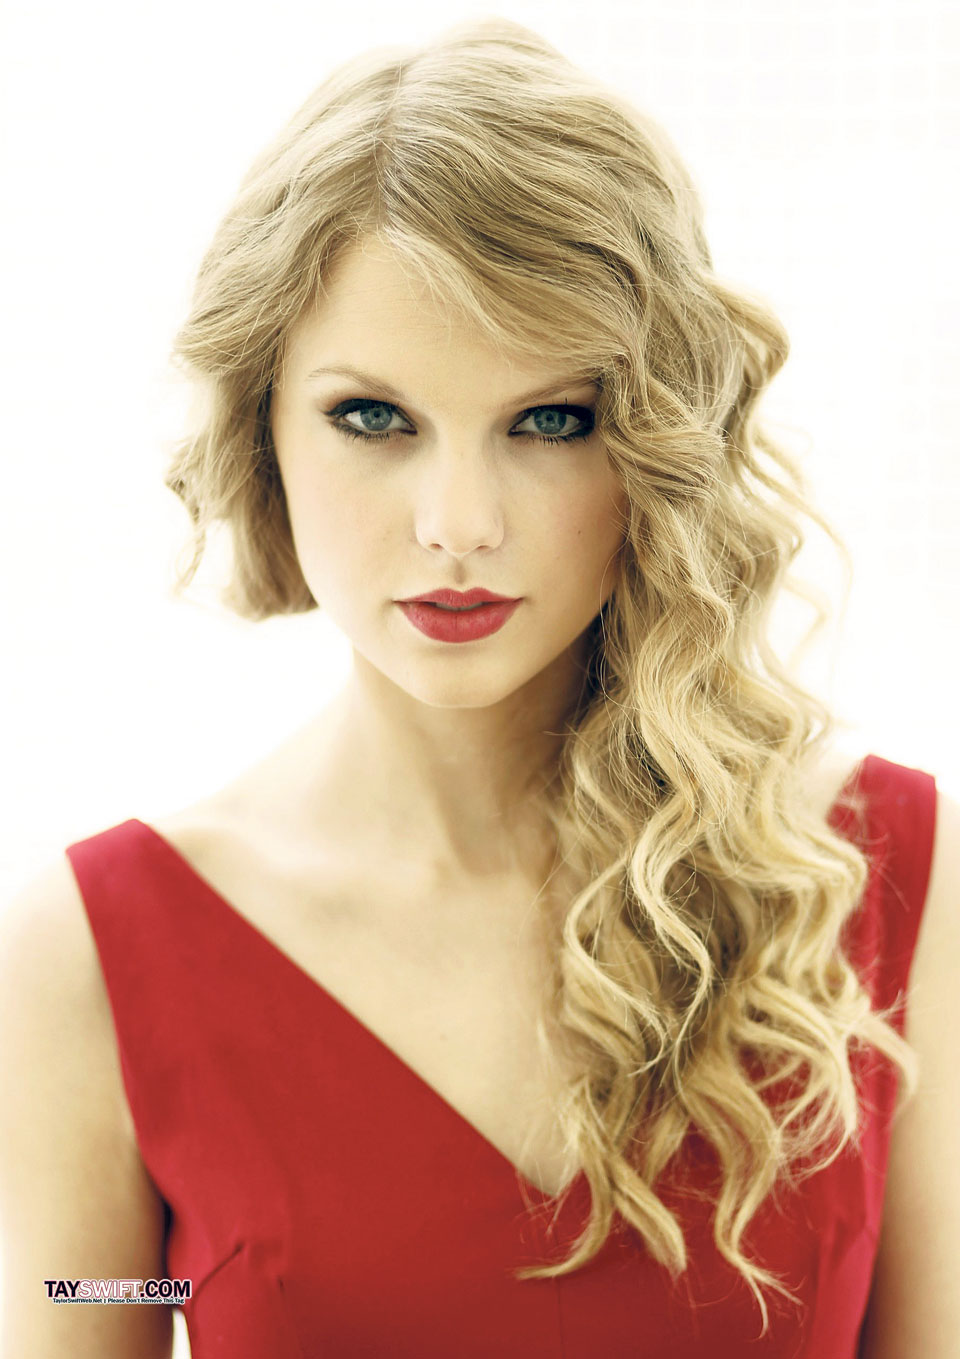 Taylor goes blank on social media, sending fans into frenzy